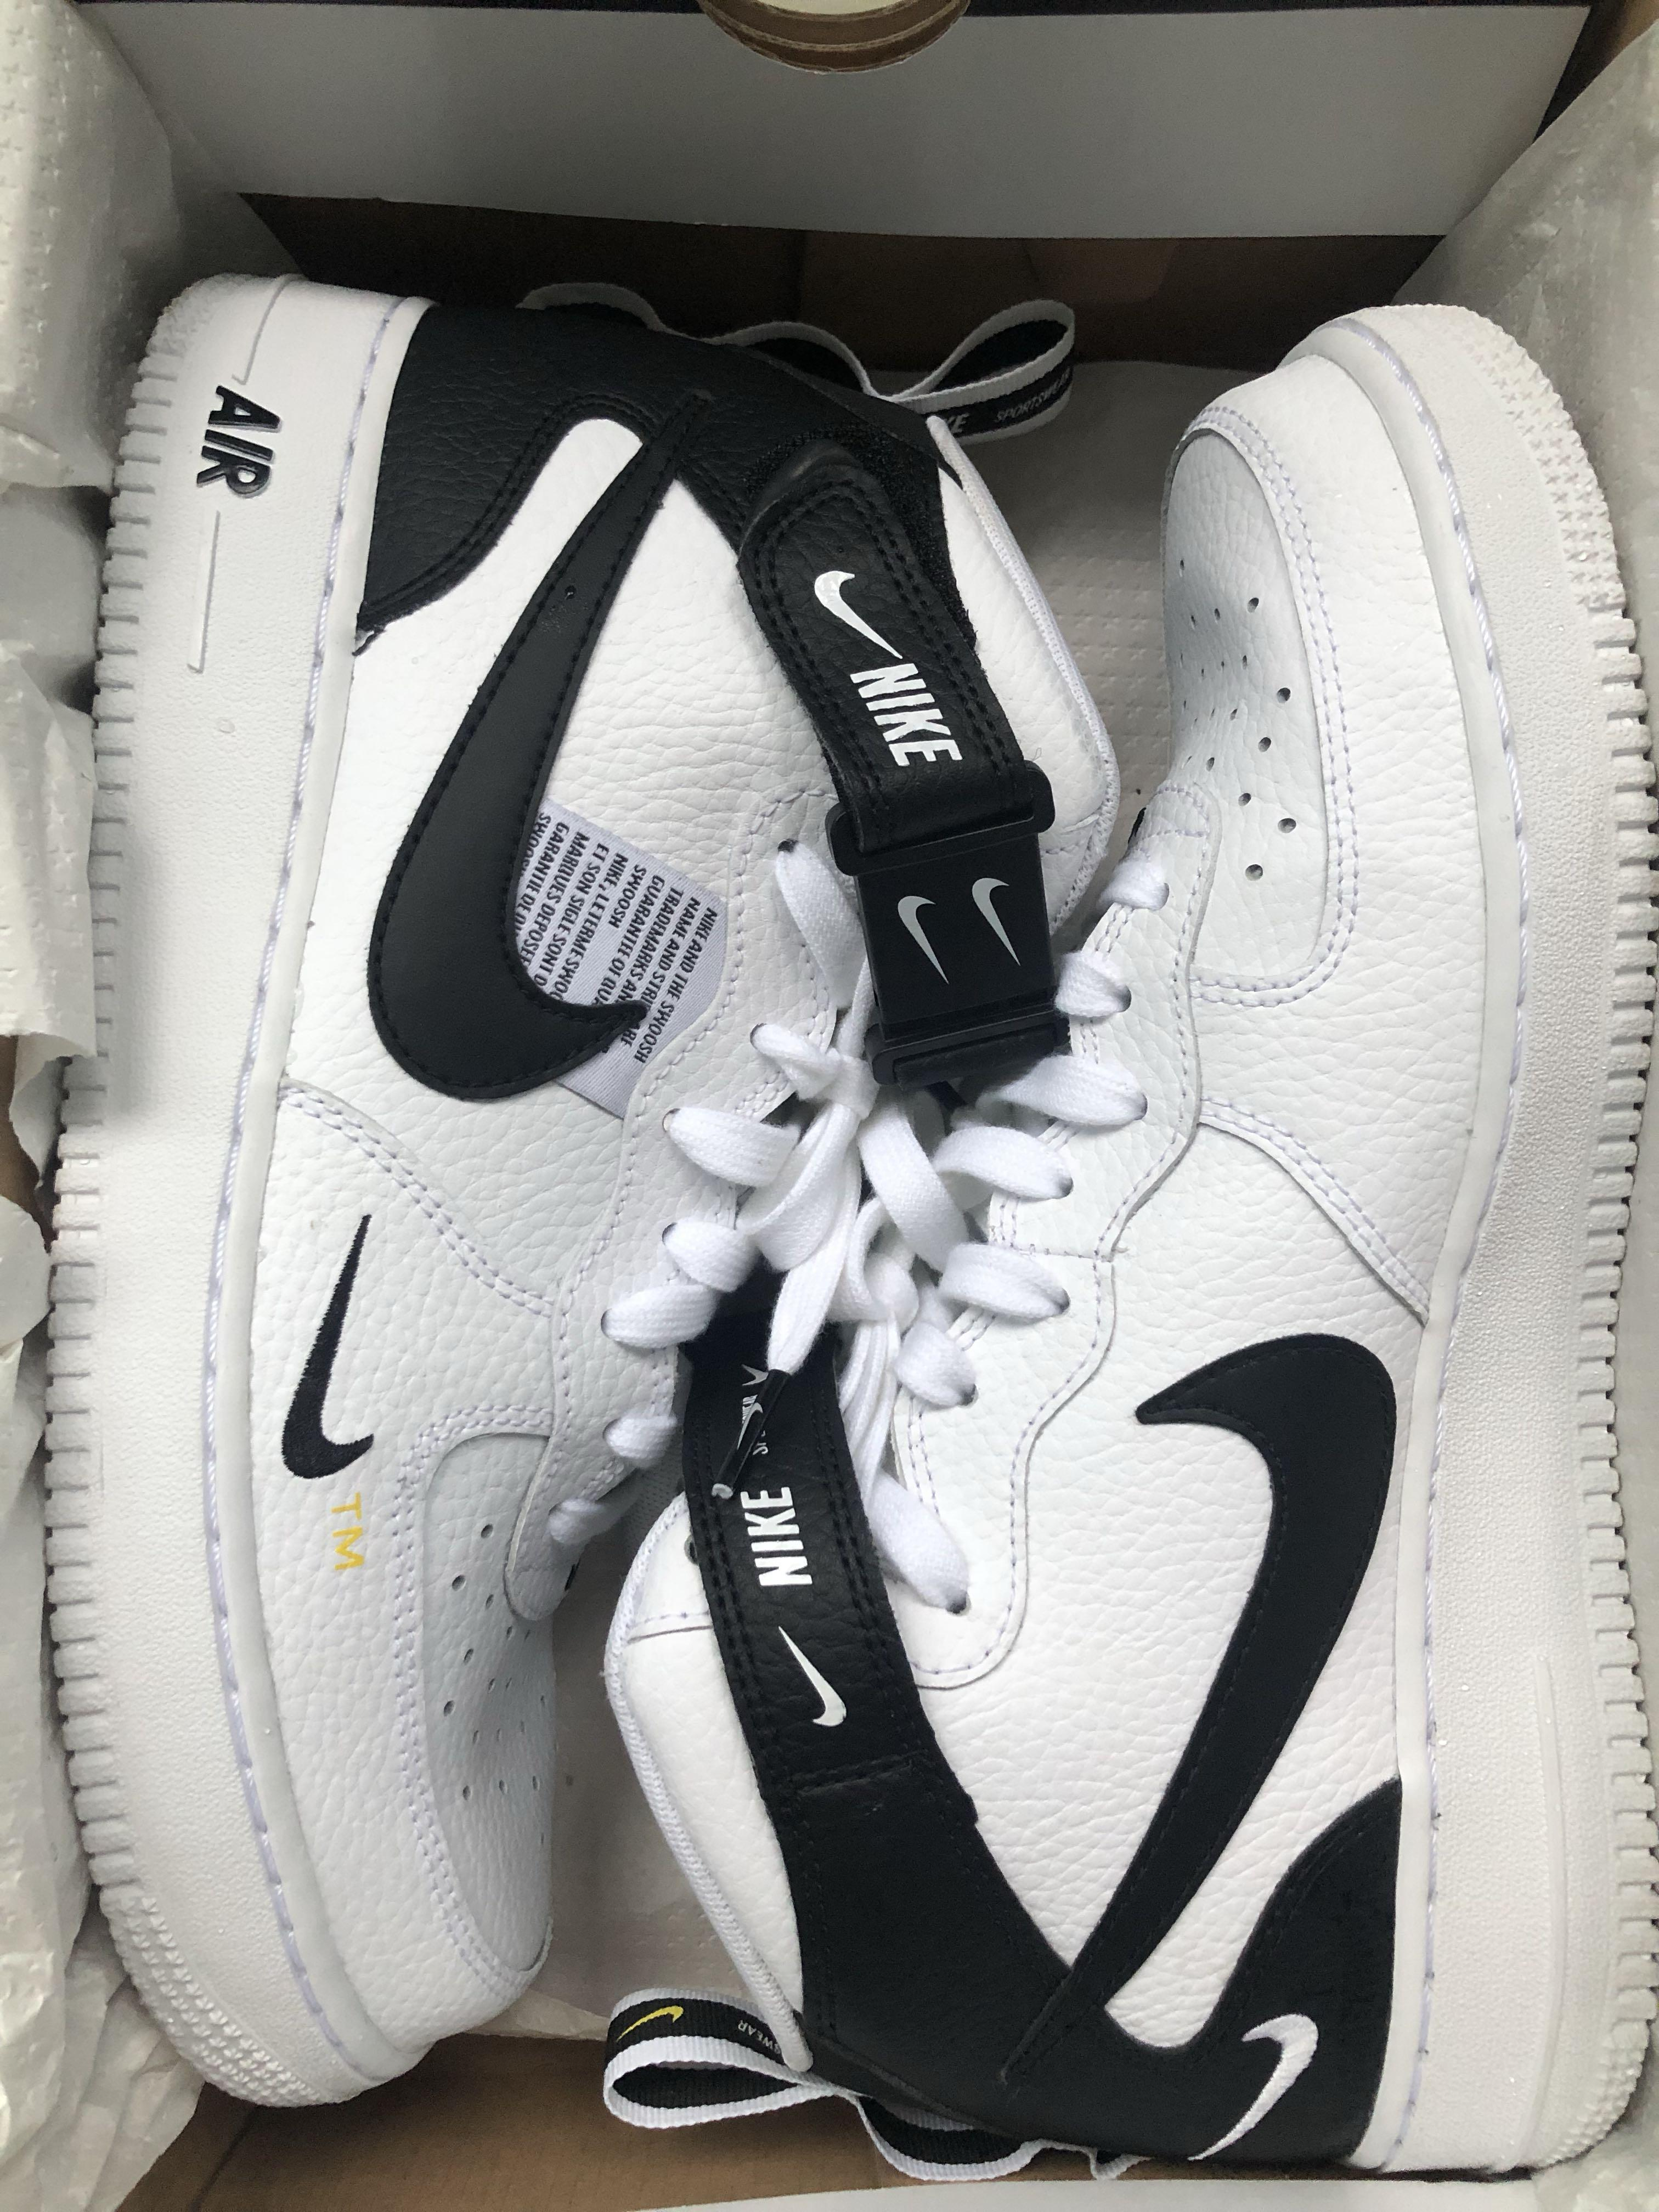 Sindicato Irradiar martillo  Nike Air Force 1 mid '07 utility (high cut), Men's Fashion, Footwear,  Sneakers on Carousell